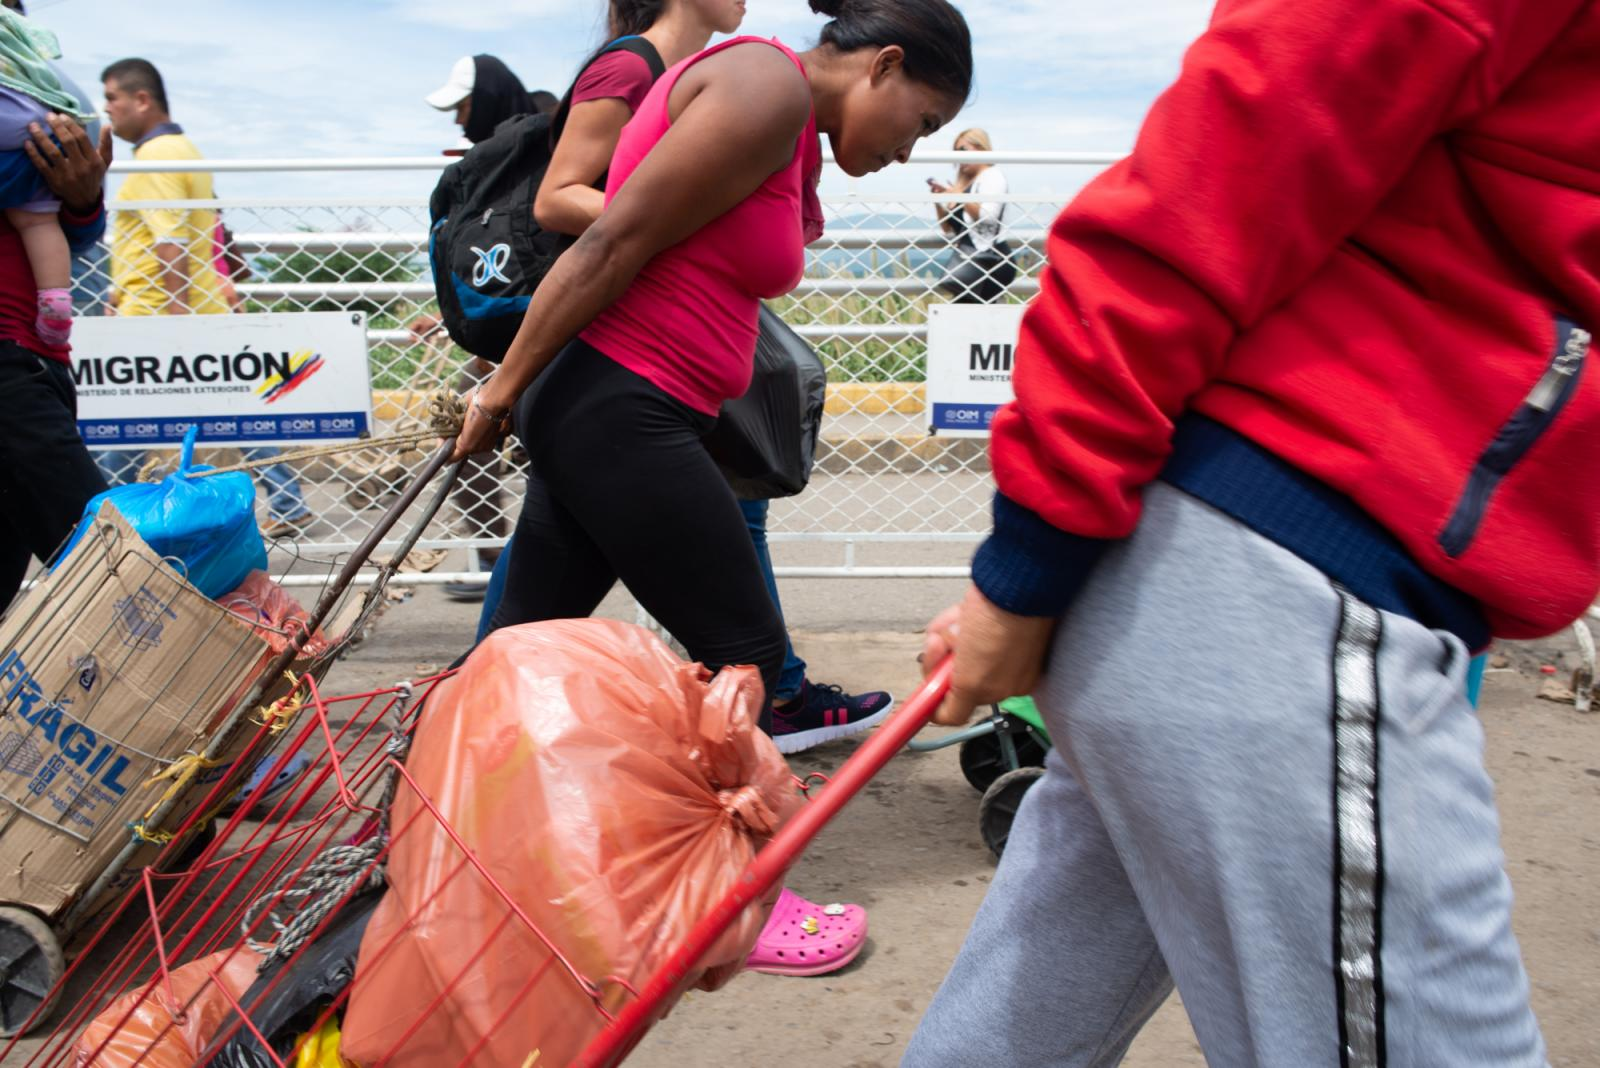 Zully (left) and Nelly (right), best friends and working partners as Garrucheras, are carrying goods for a client from Colombia to Venezuela. La Parada, Colombia - October 10, 2019.